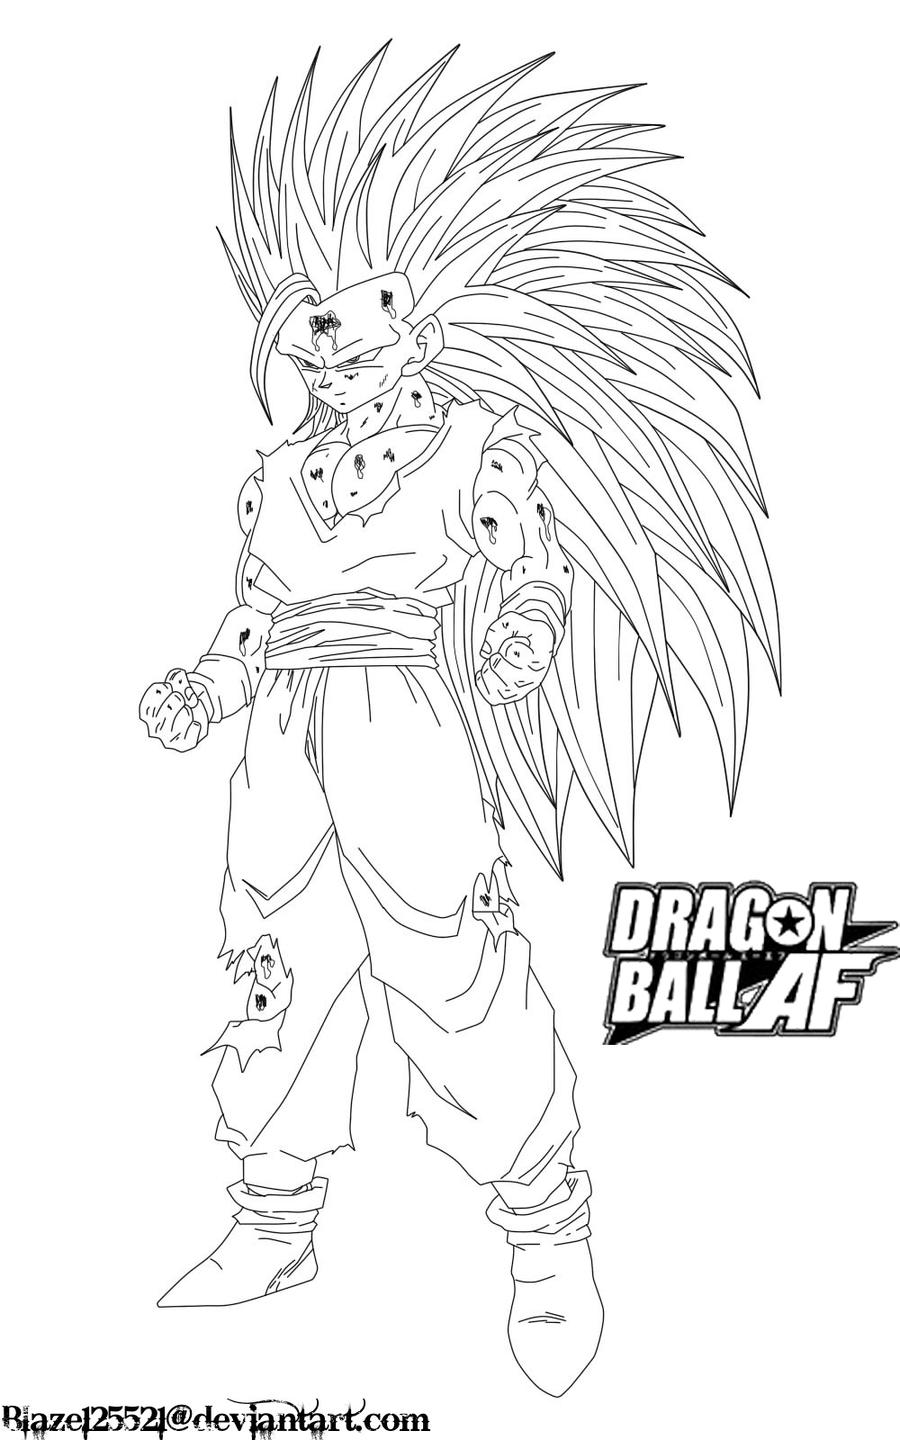 Ssj2 Teen Gohan - Free Coloring Pages